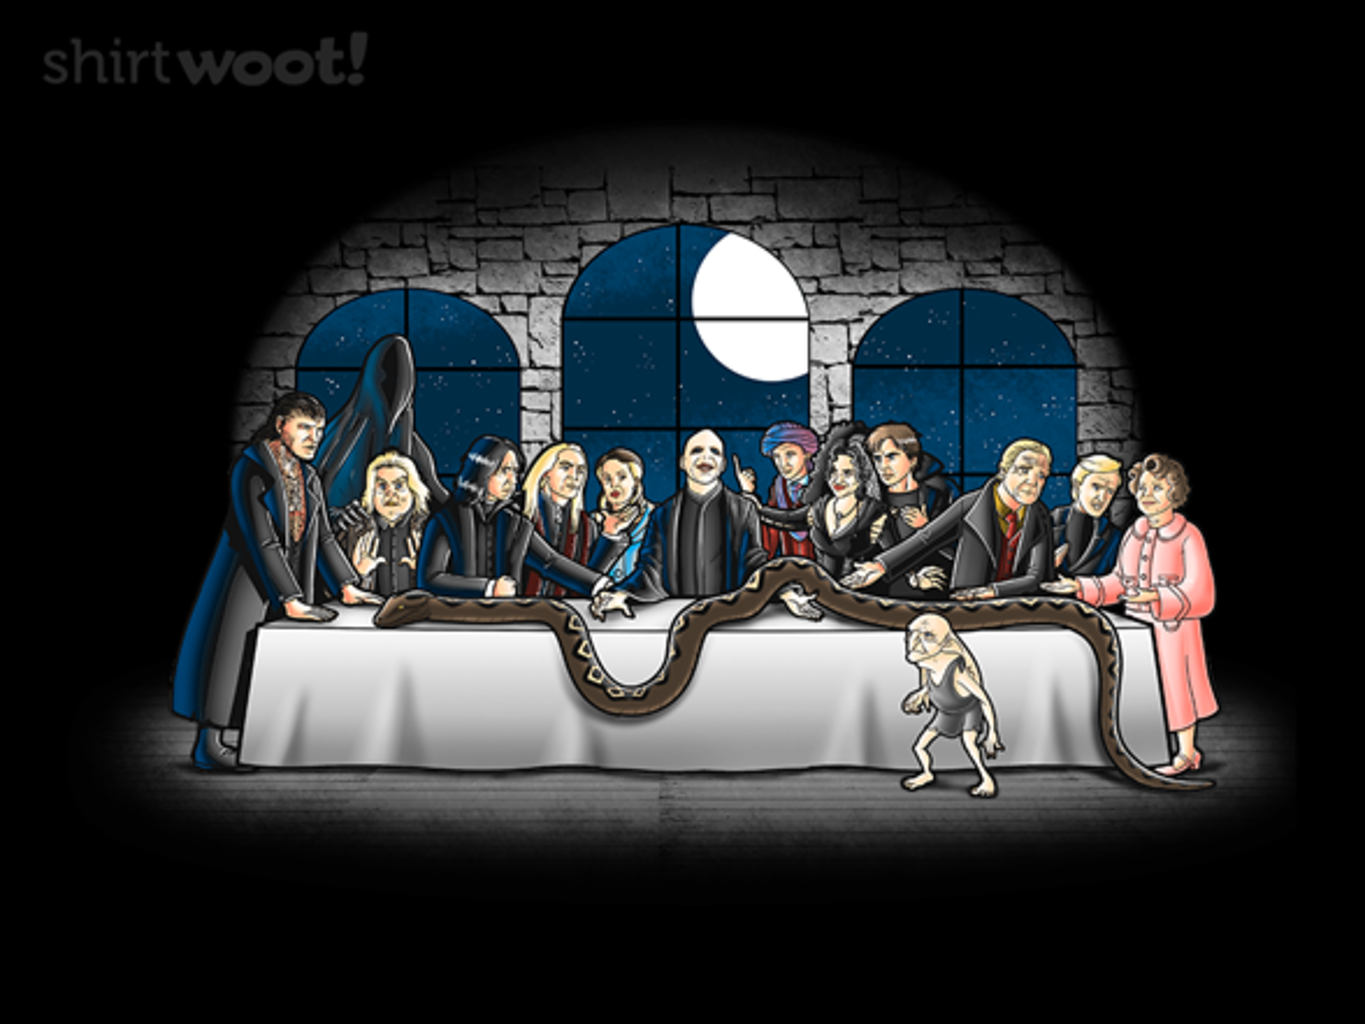 Woot!: A Dinner of Darkness